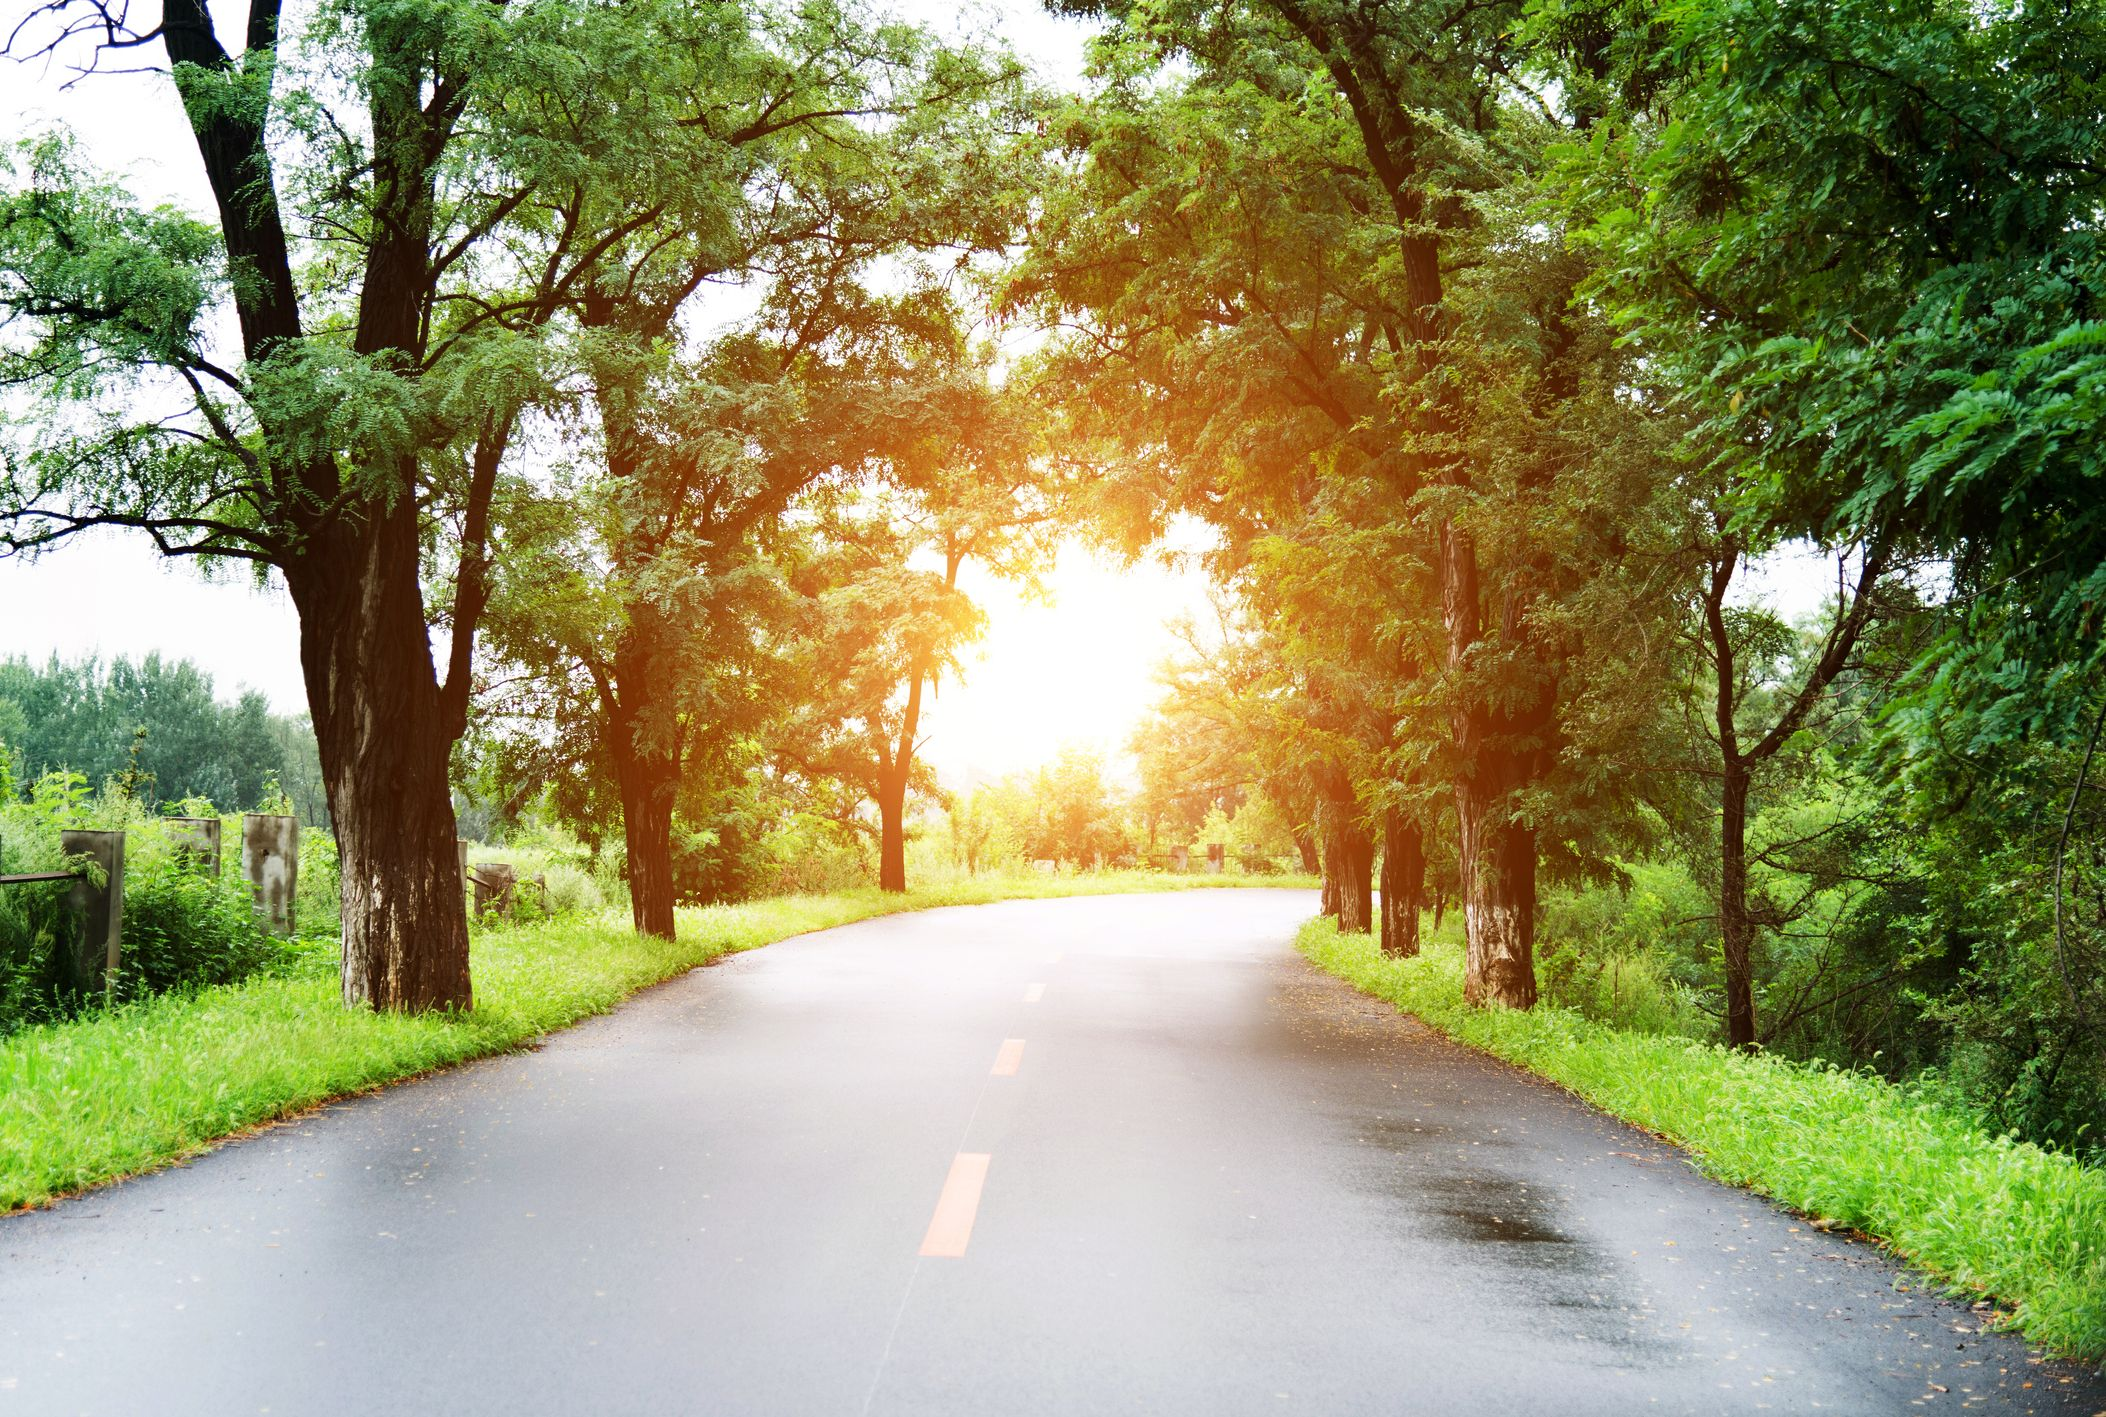 What If Two Roads Are Illusion What If >> Why Does The Road Look Wet On Hot Days Mental Floss